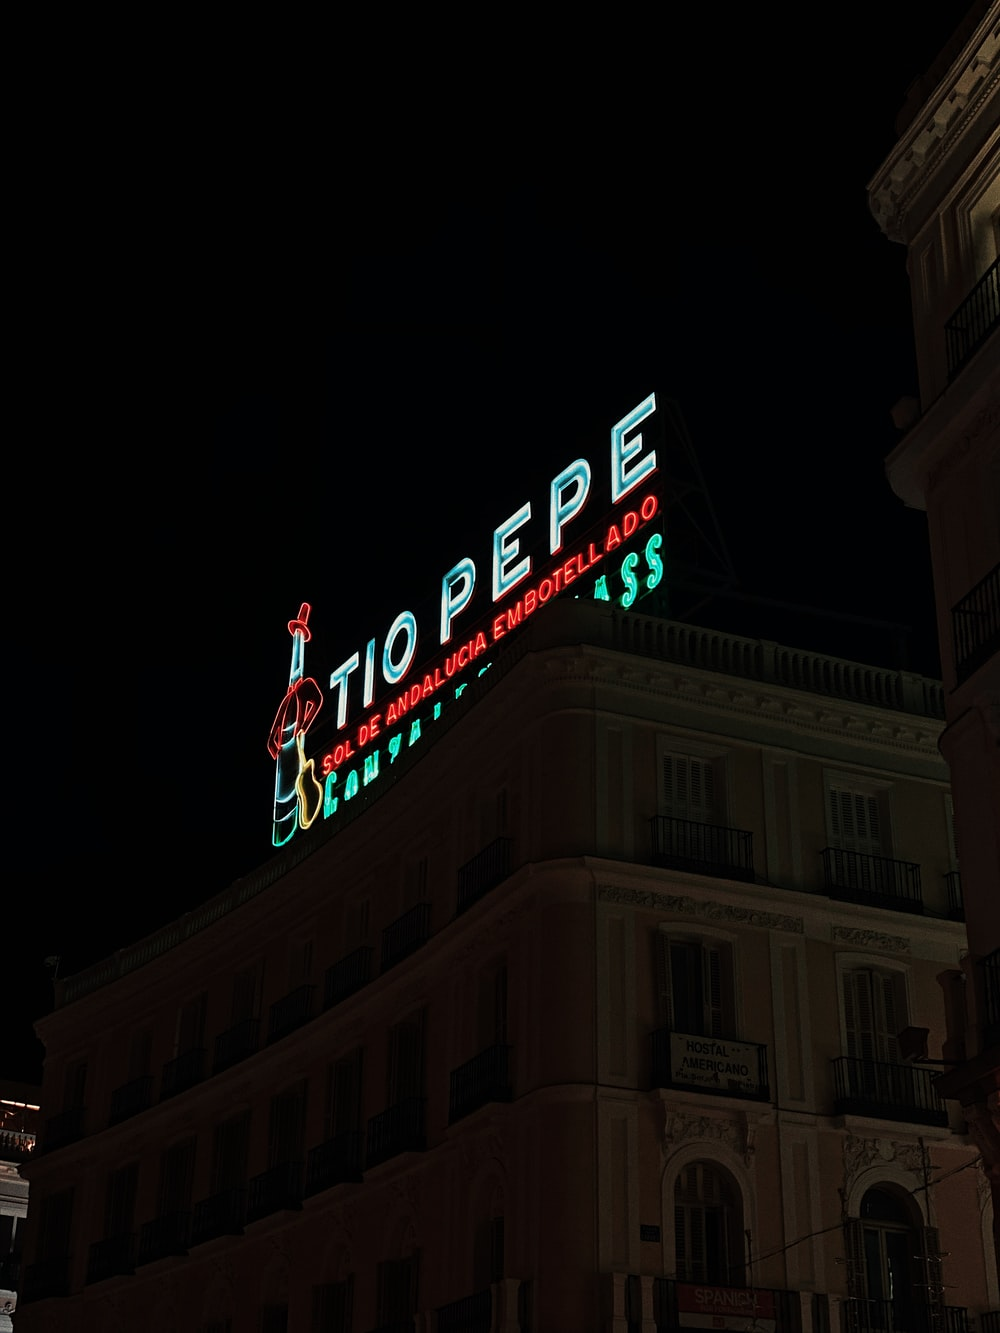 Tio Pepe signage at night